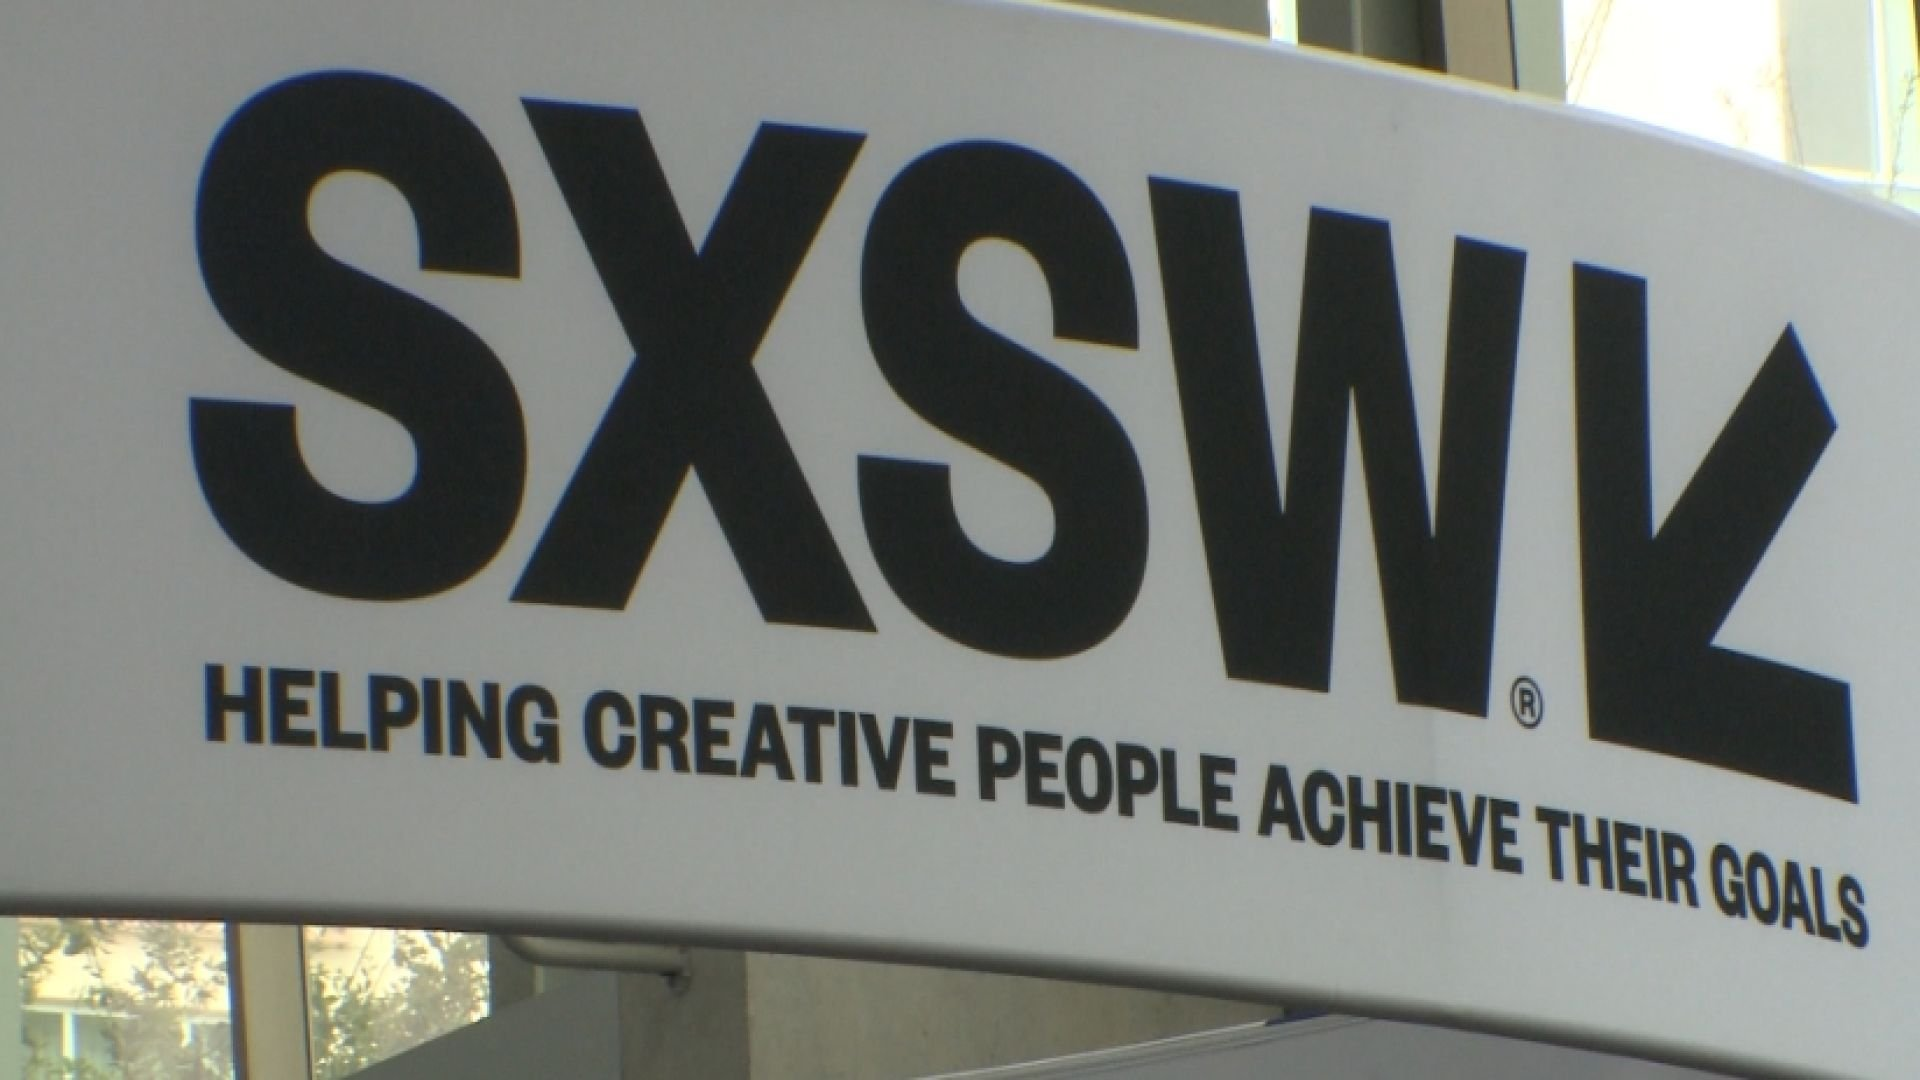 The annual SXSW (South by Southwest) conference in Austin features the latest in technology and music. (NBC News)